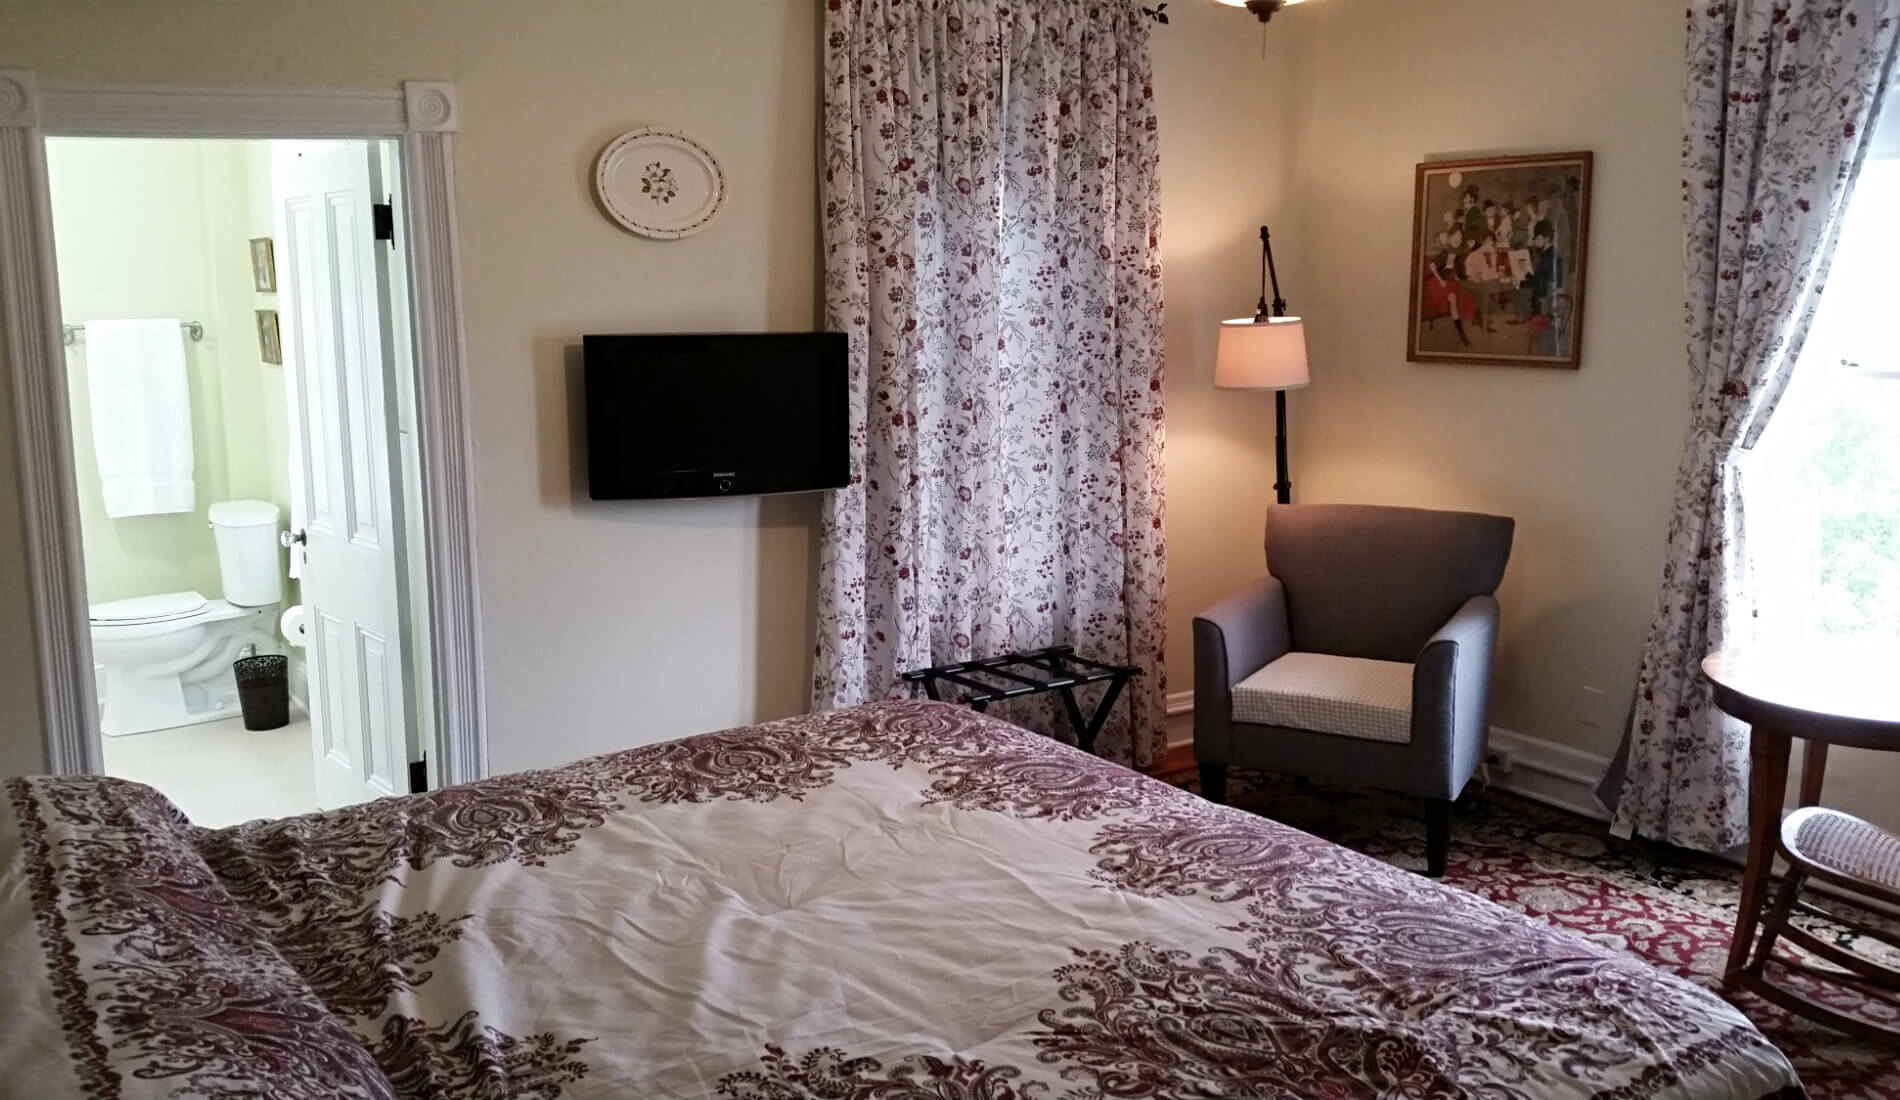 Beige guest room with burgundy and ivory bedding, flat screen tv, a chair and reading lamp